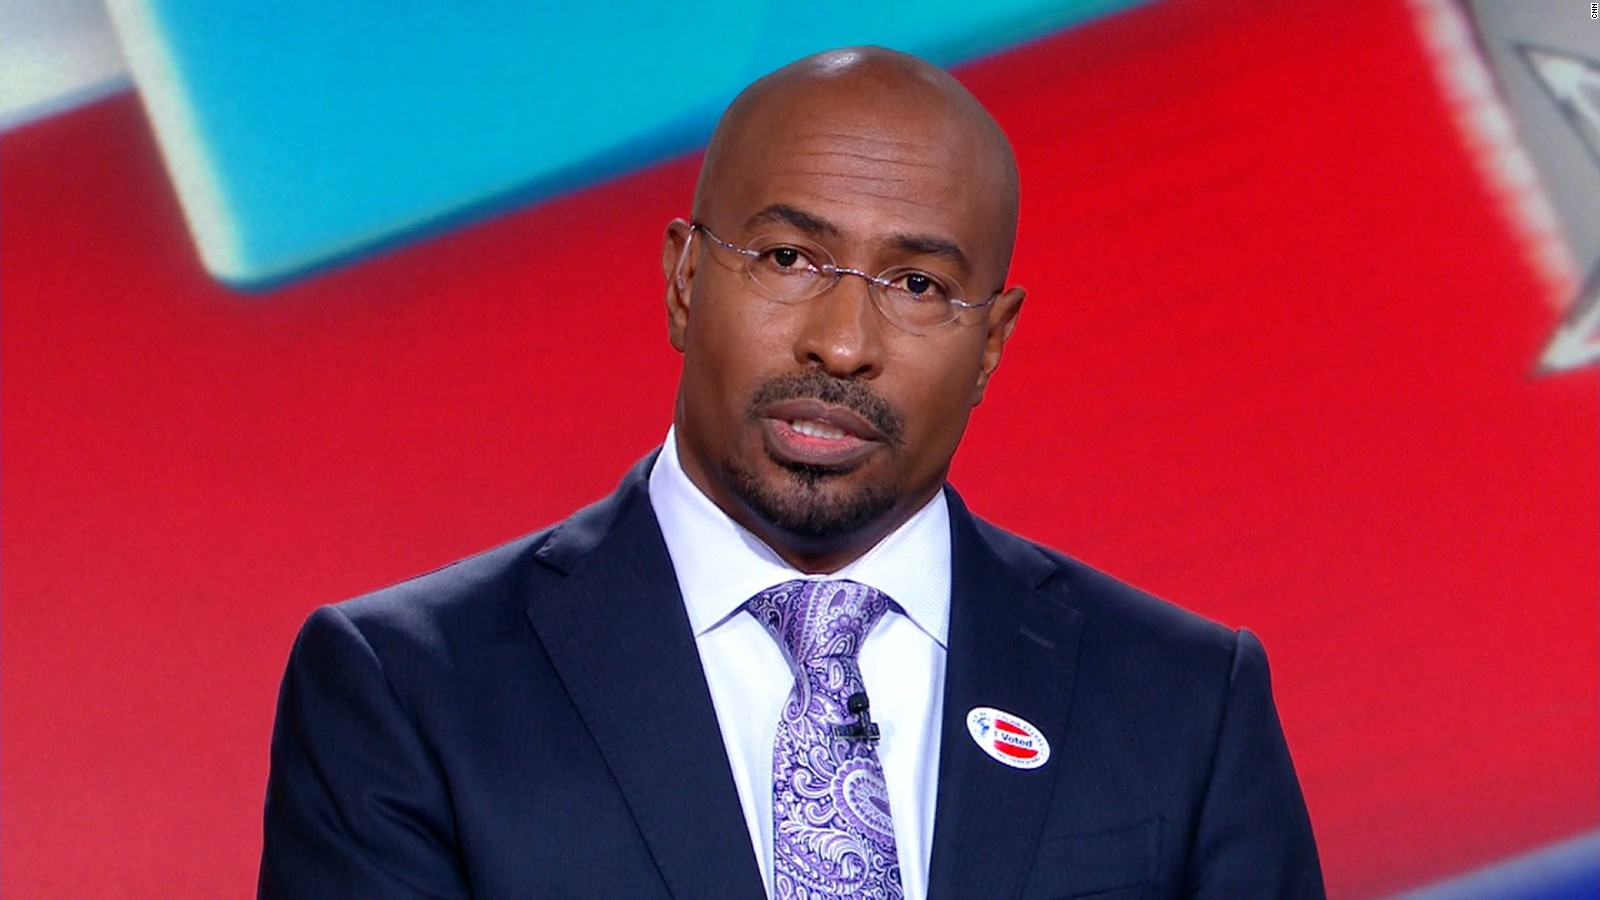 Van Jones Net Worth